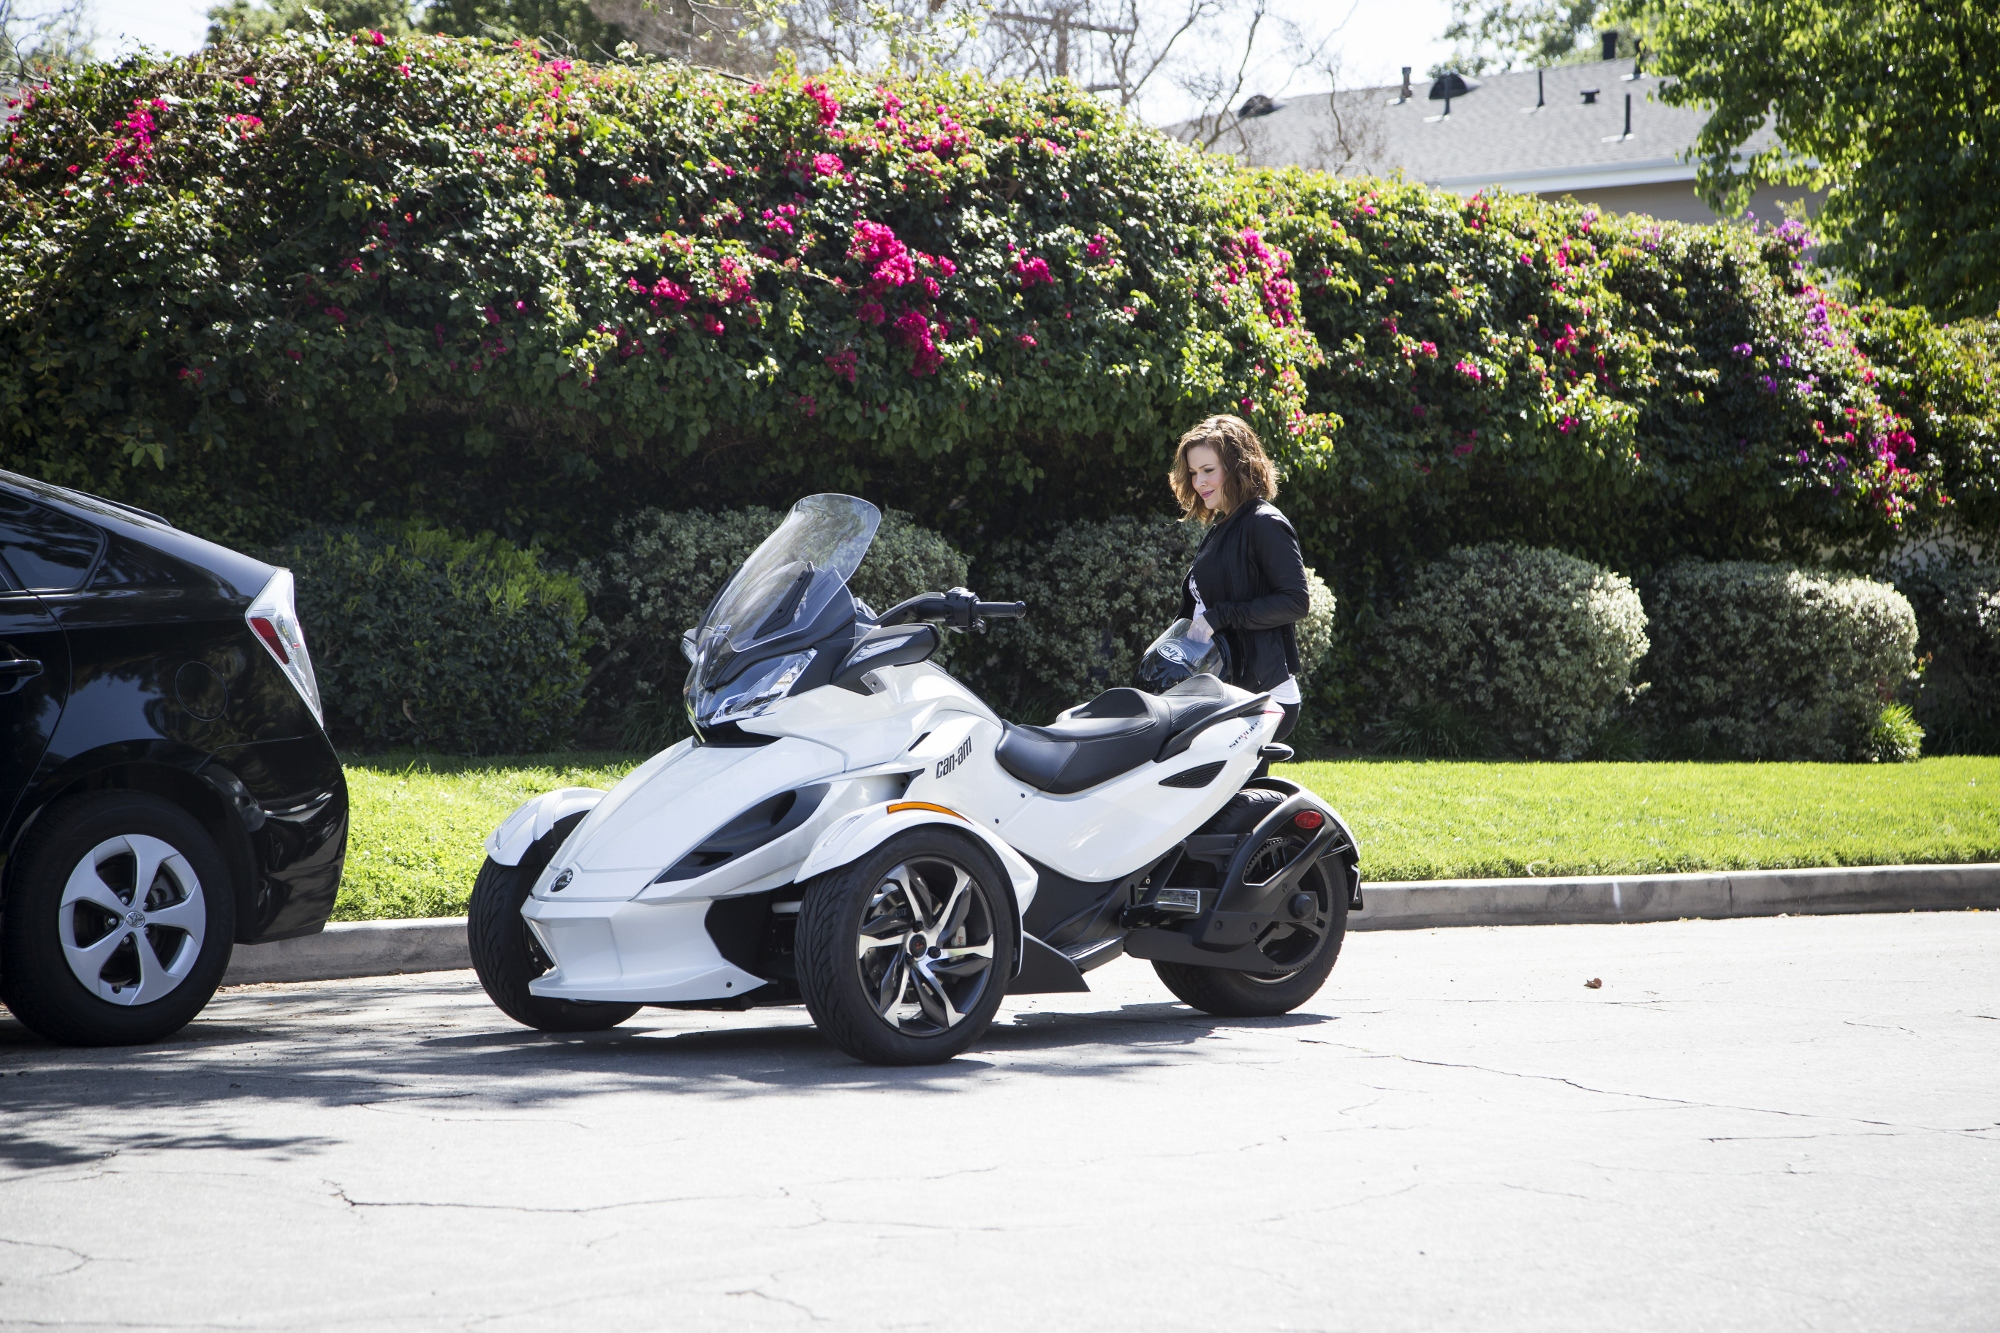 Alyssa Milano getting ready to grab a ride on her husband David Bulgliari's Can-Am Spyder in L.A.  Photo Credit: Michael Simon